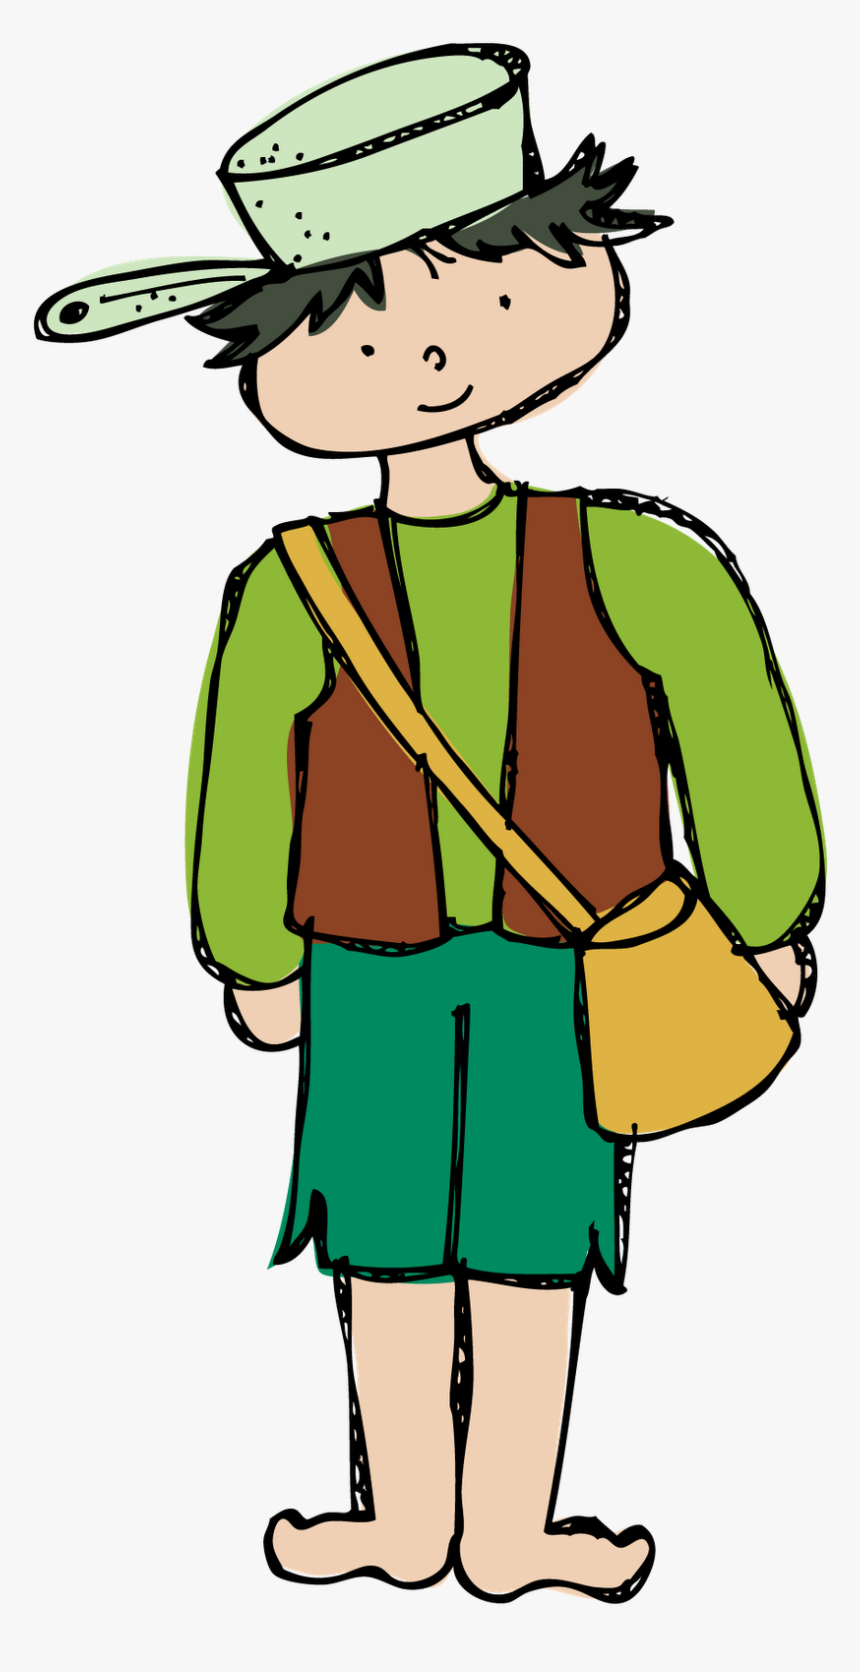 Homeless Clipart Poverty - Johnny Appleseed Clipart, HD Png Download, Free Download